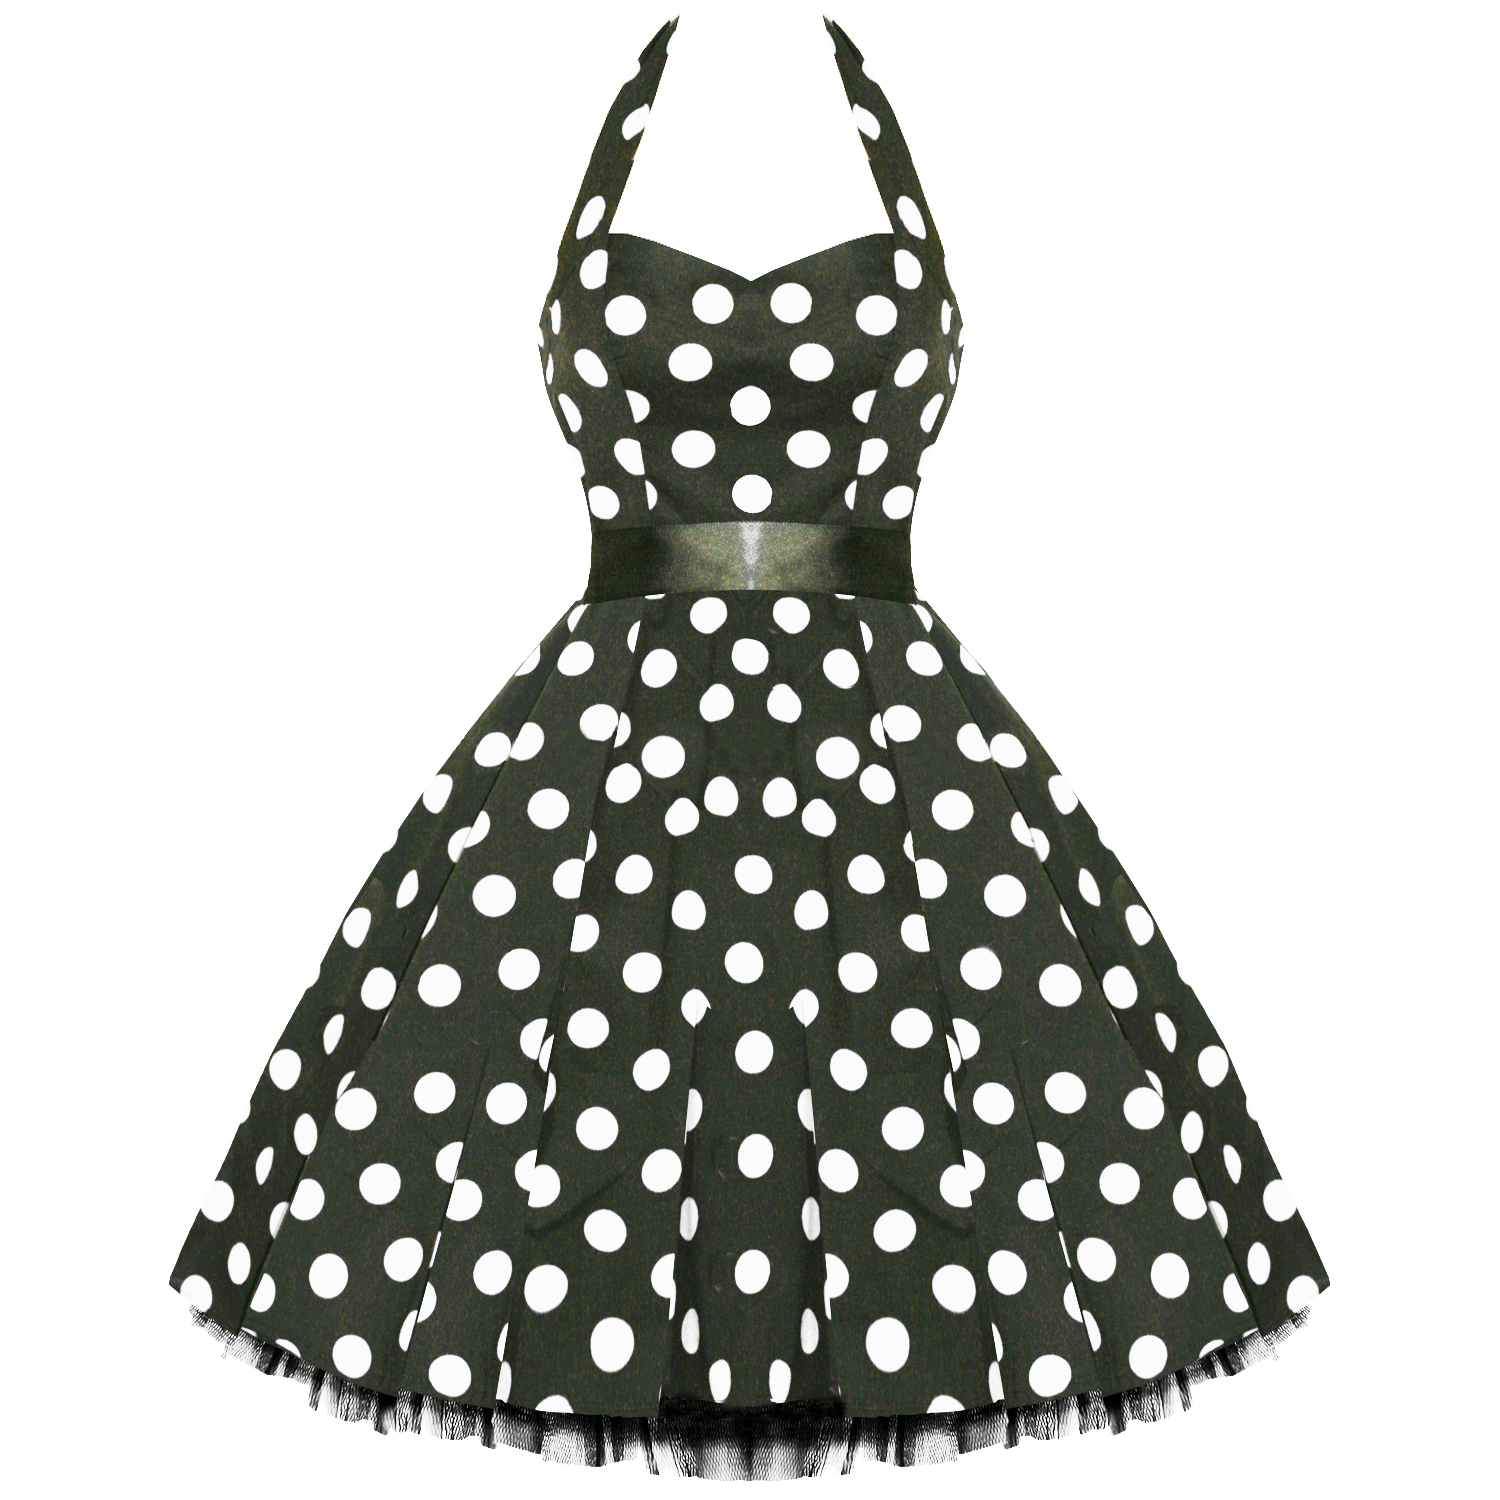 LADIES NEW BLACK POLKA DOT VTG 50S SWING PINUP PARTY PROM